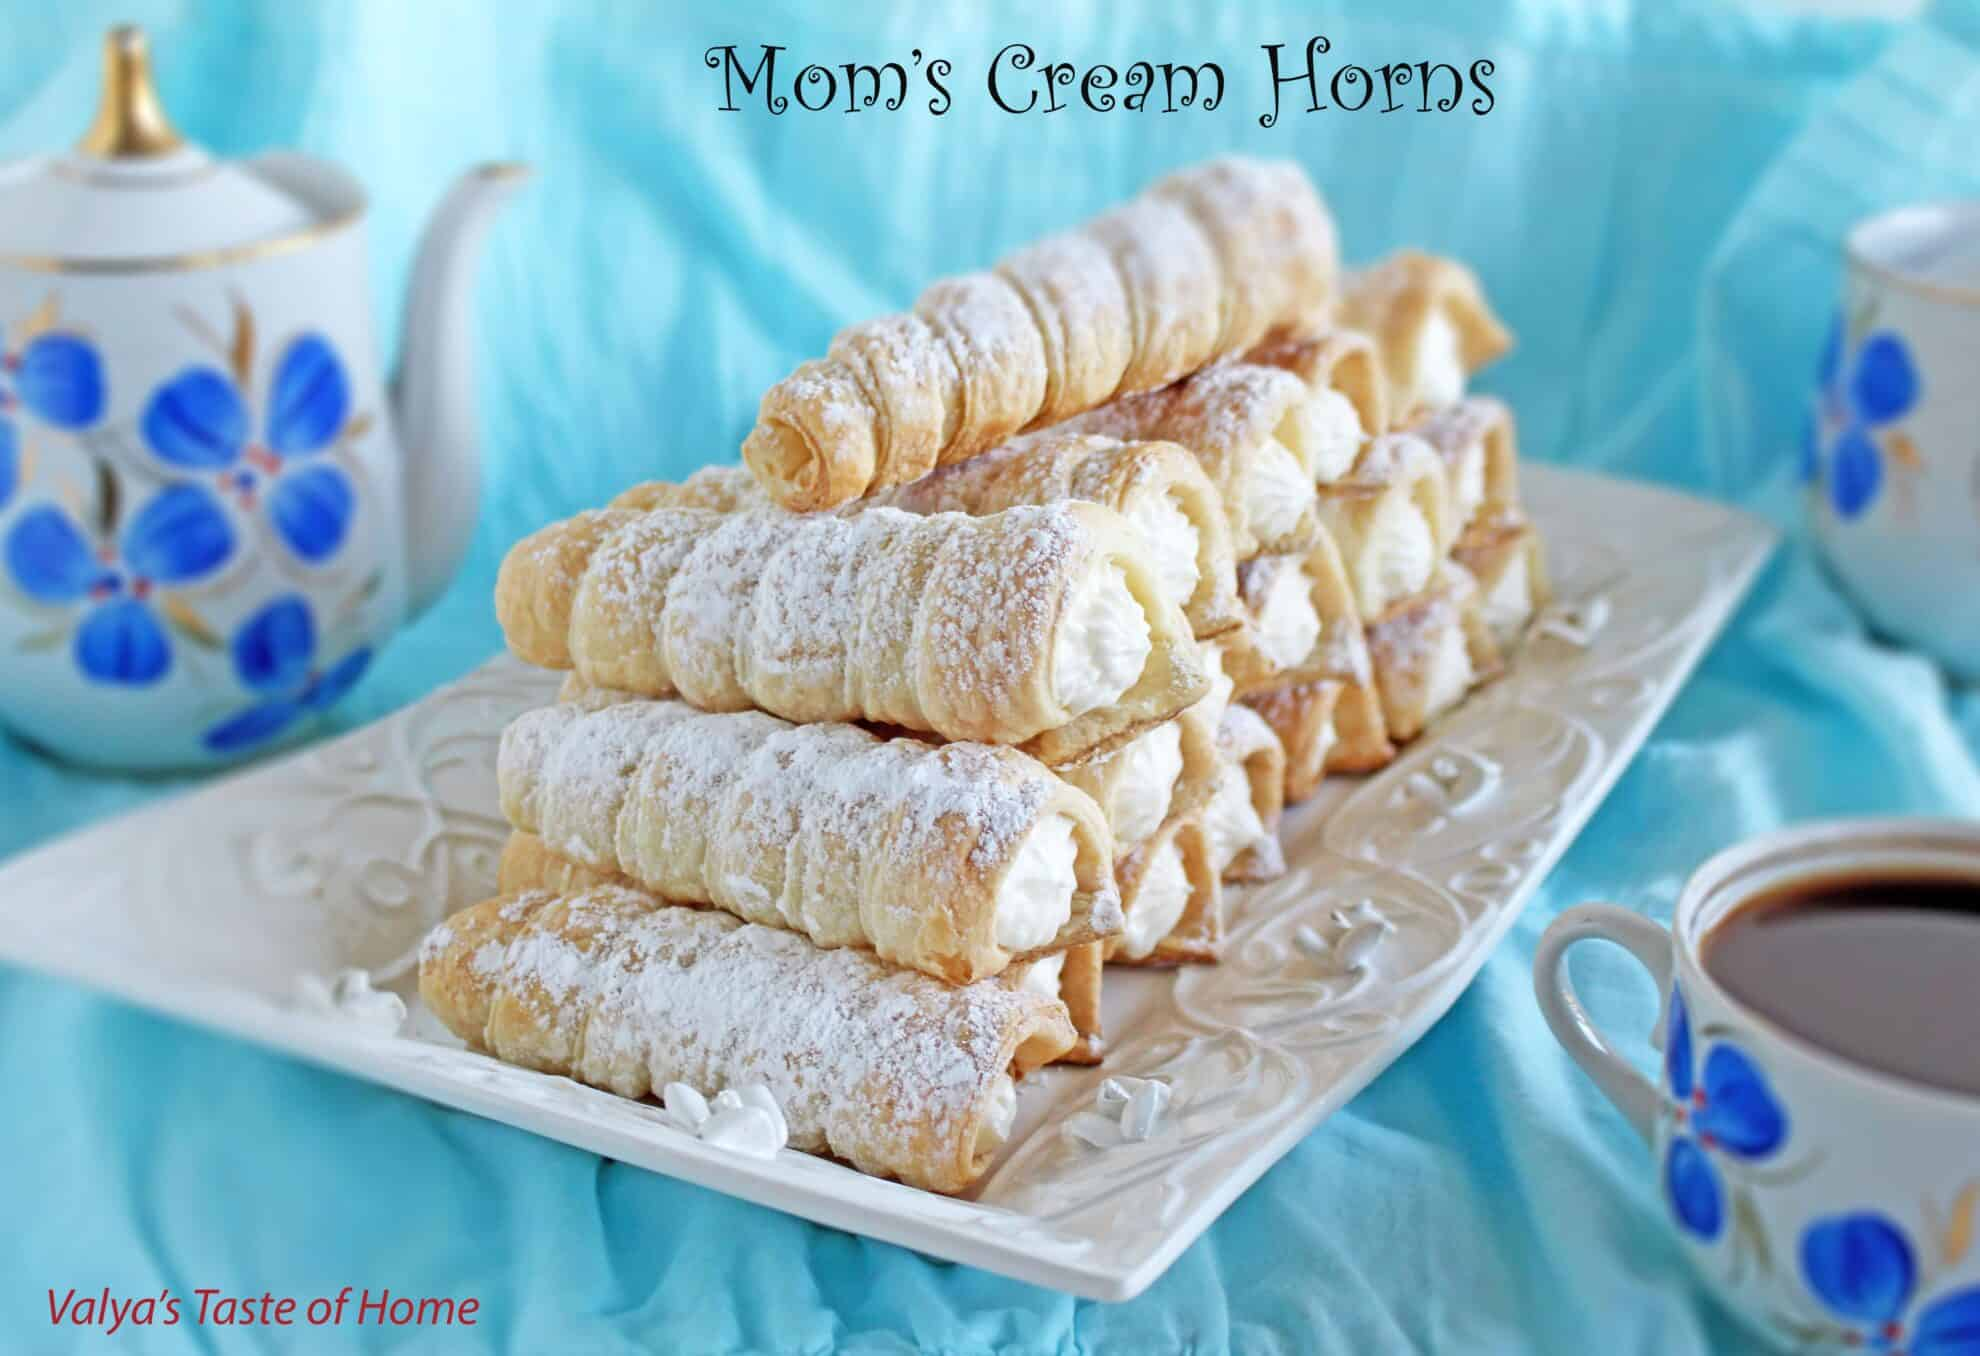 Mom's Cream Horns